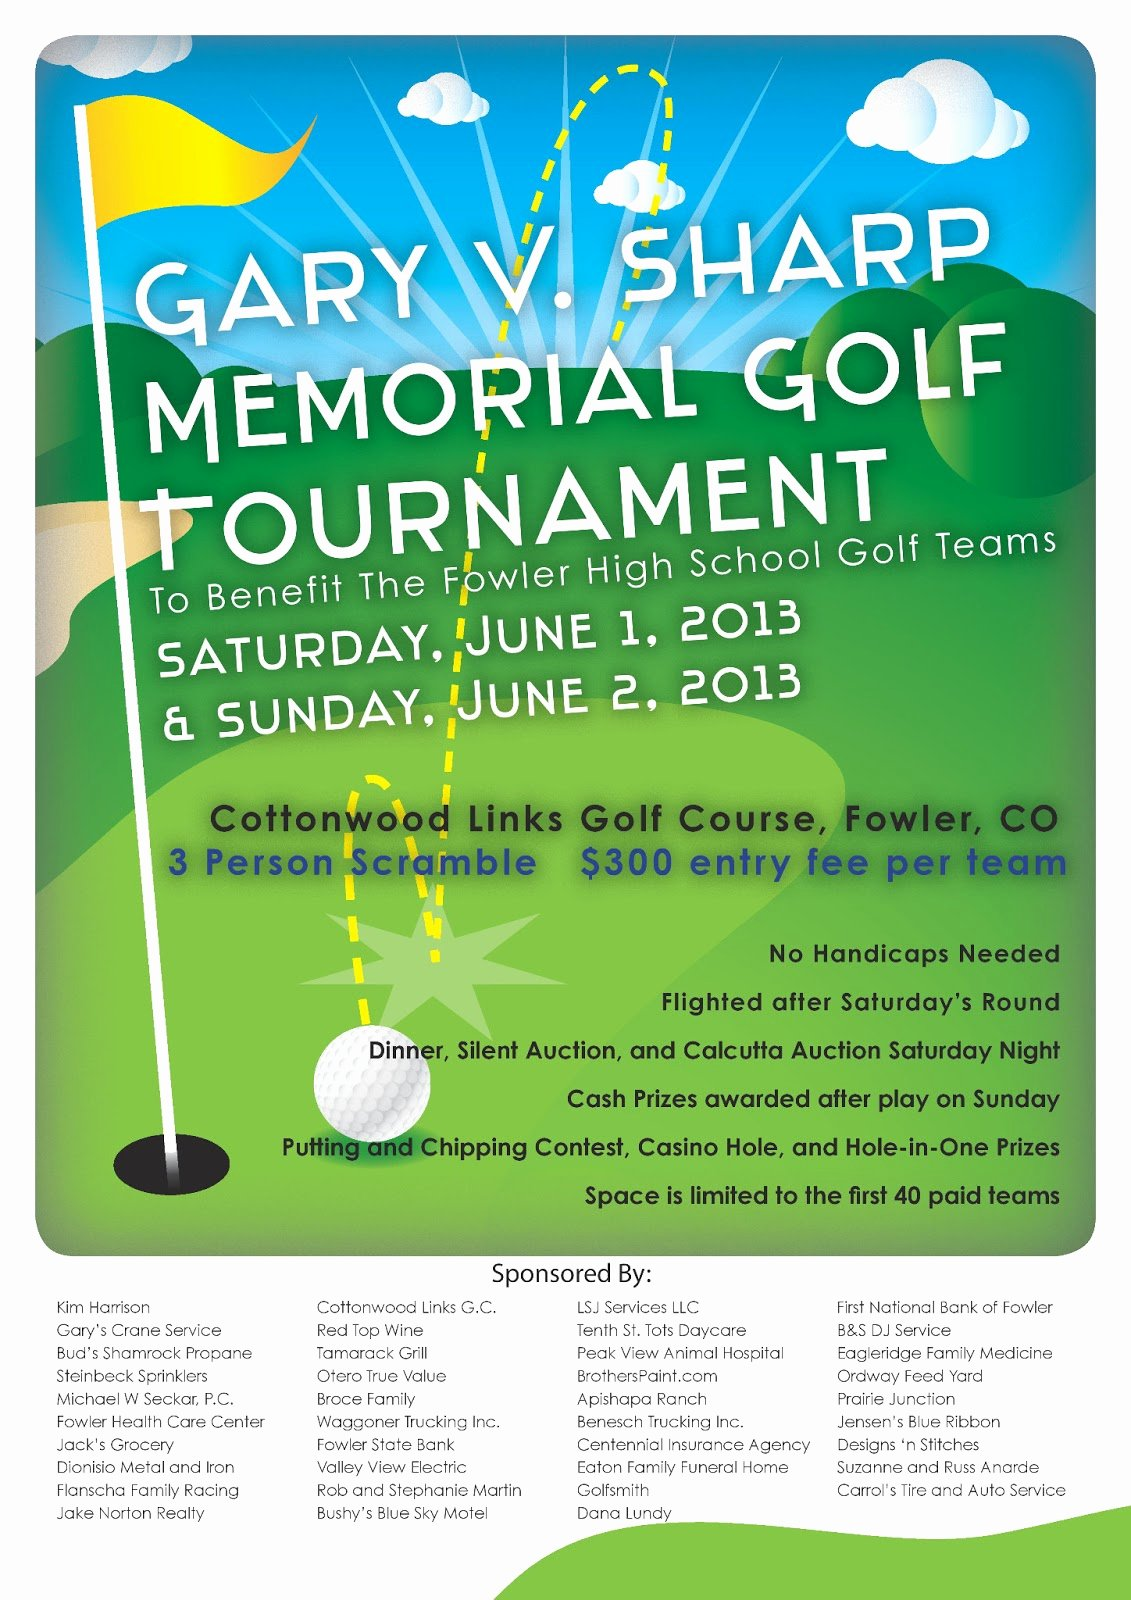 Golf Scramble Flyer Template Fresh Gary V Sharp Memorial Golf tournament tournament Flyer